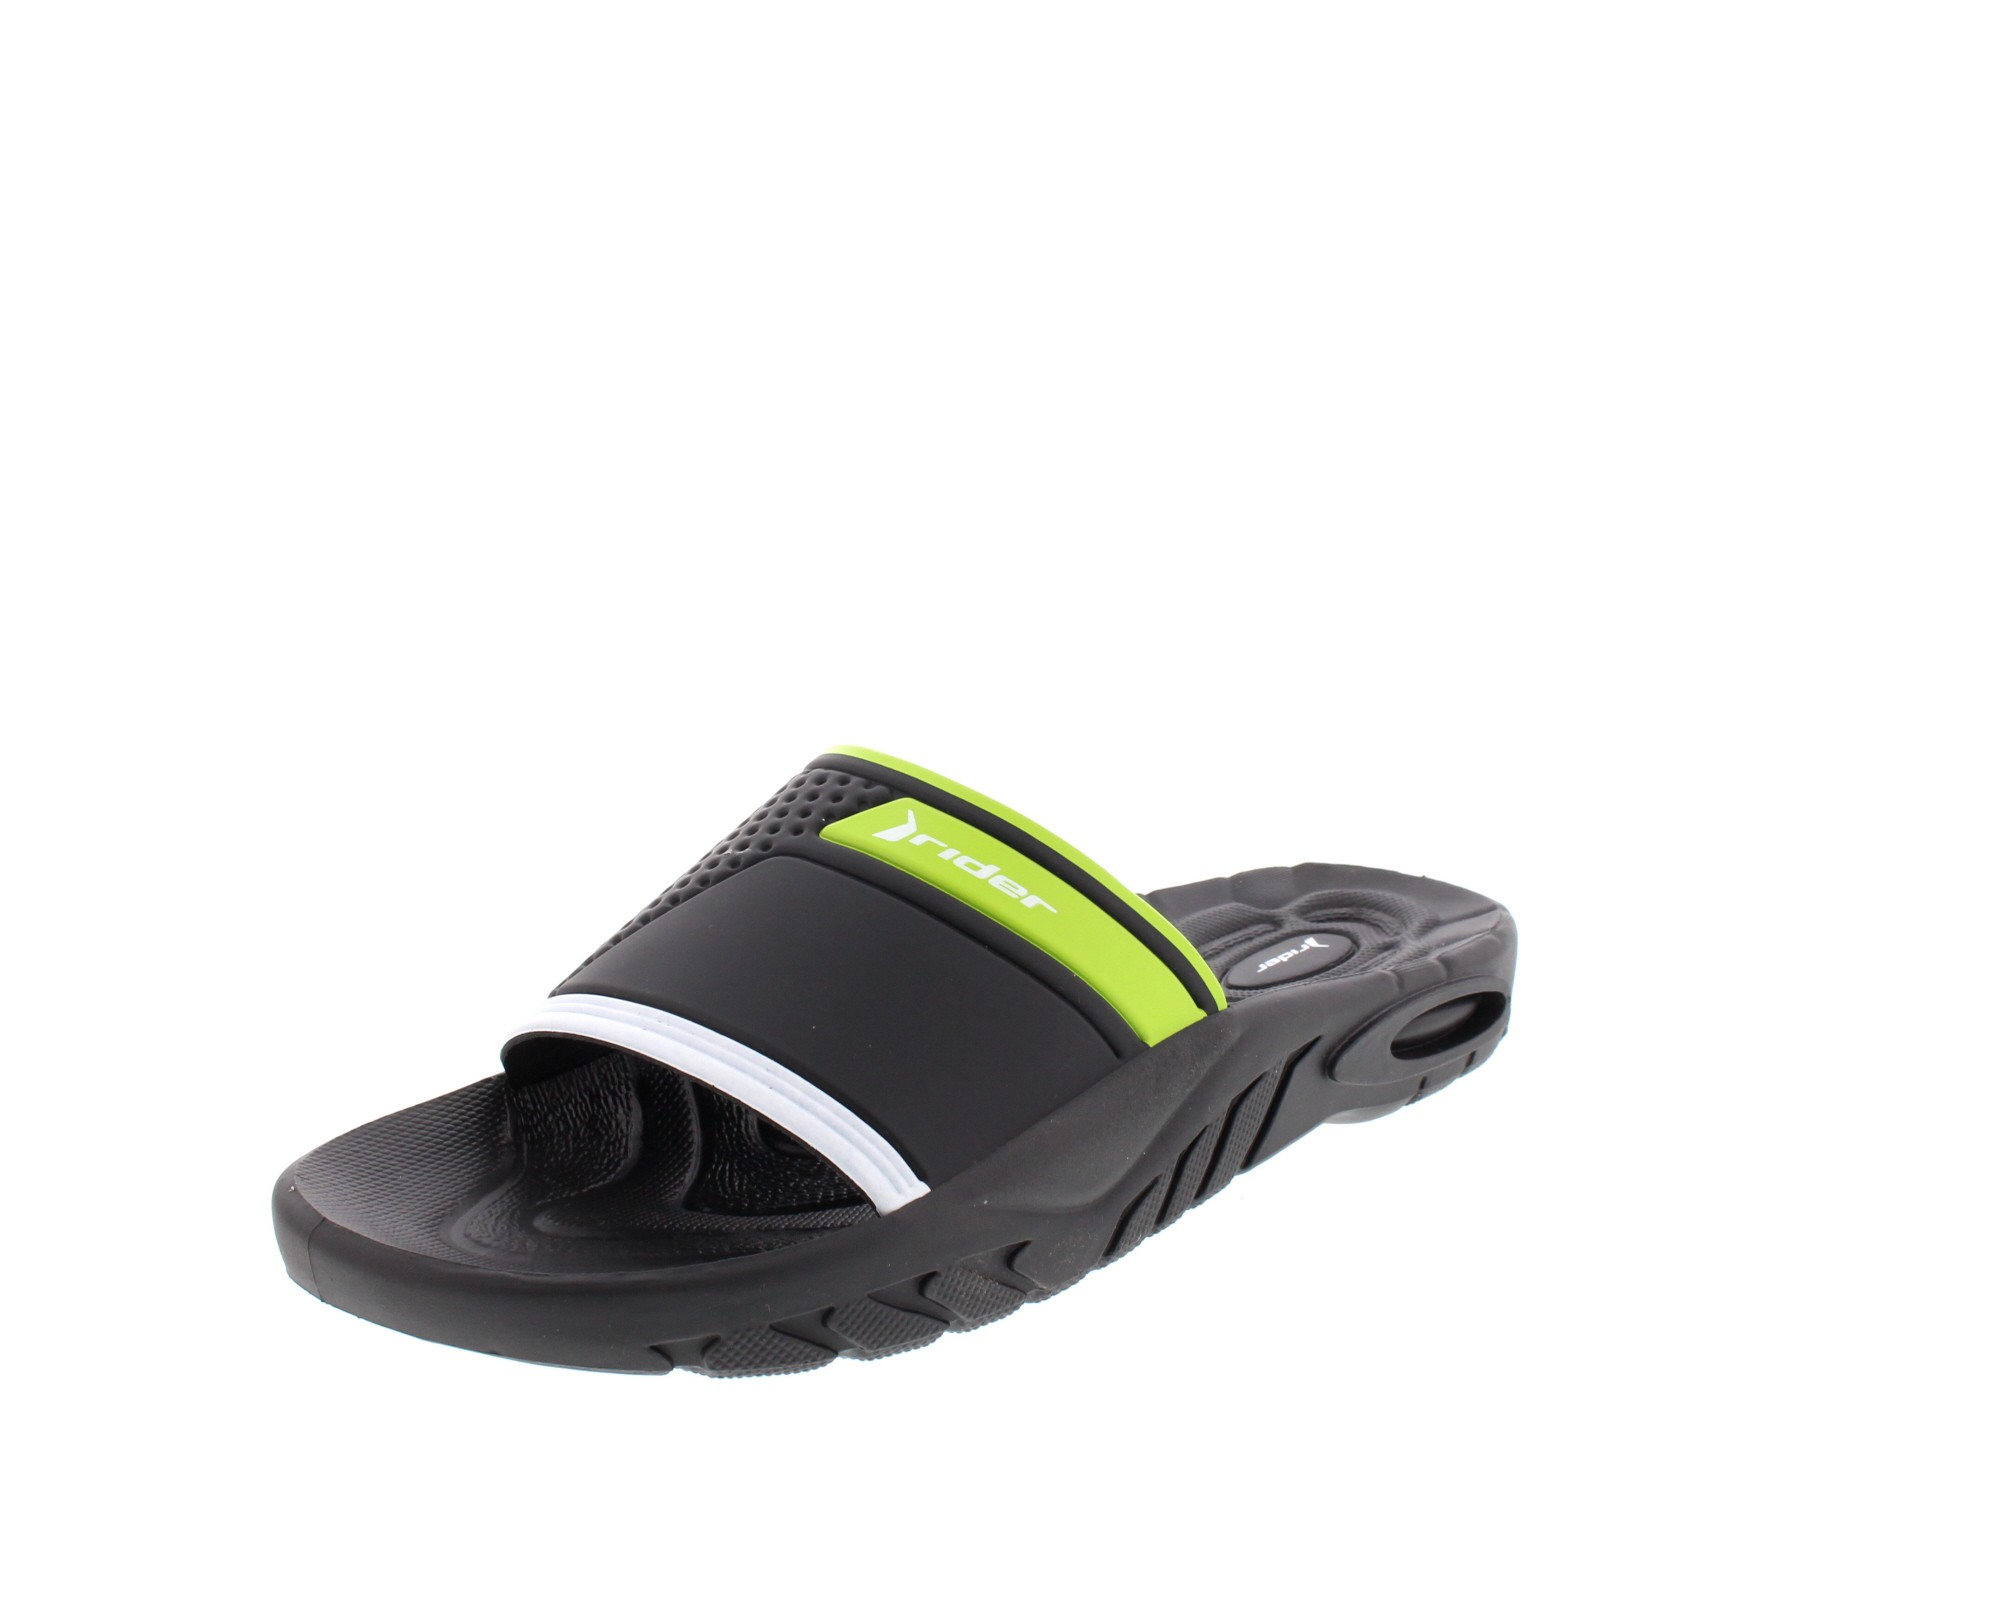 RIDER Schuhe - Schlappe SAILOR AD 81129 - black green